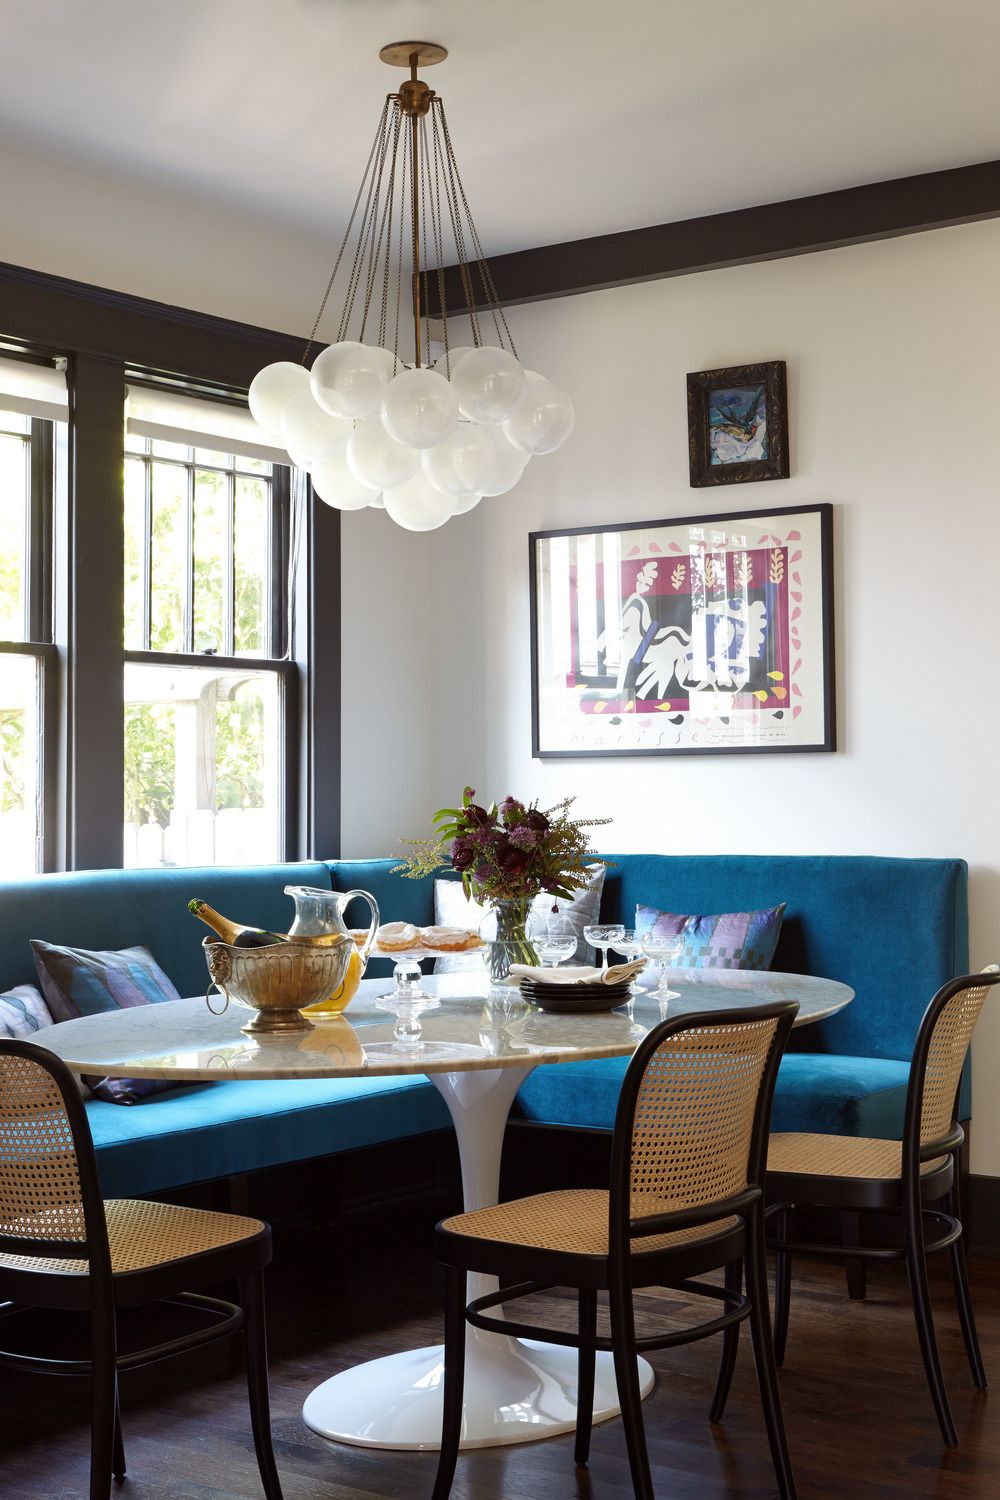 banquette table as the best dining room and kitchen furniture. In Good Taste:Benjamin Vandiver - Design Chic Banquette Table As The Best Dining Room And Kitchen Furniture